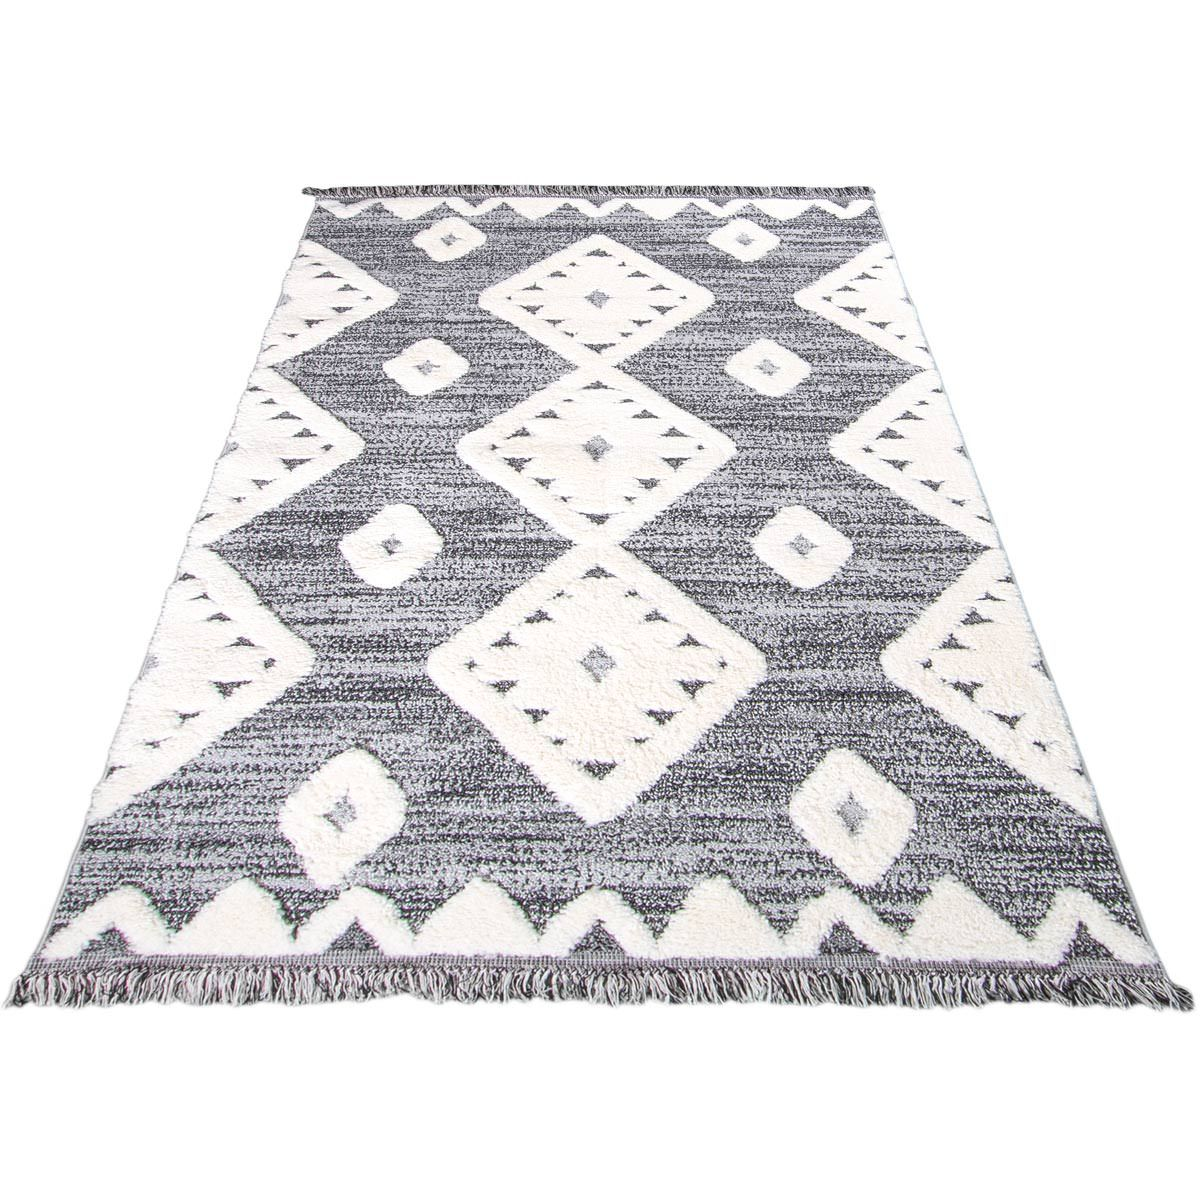 Atlas Rug 07 Grey - Fringes 8